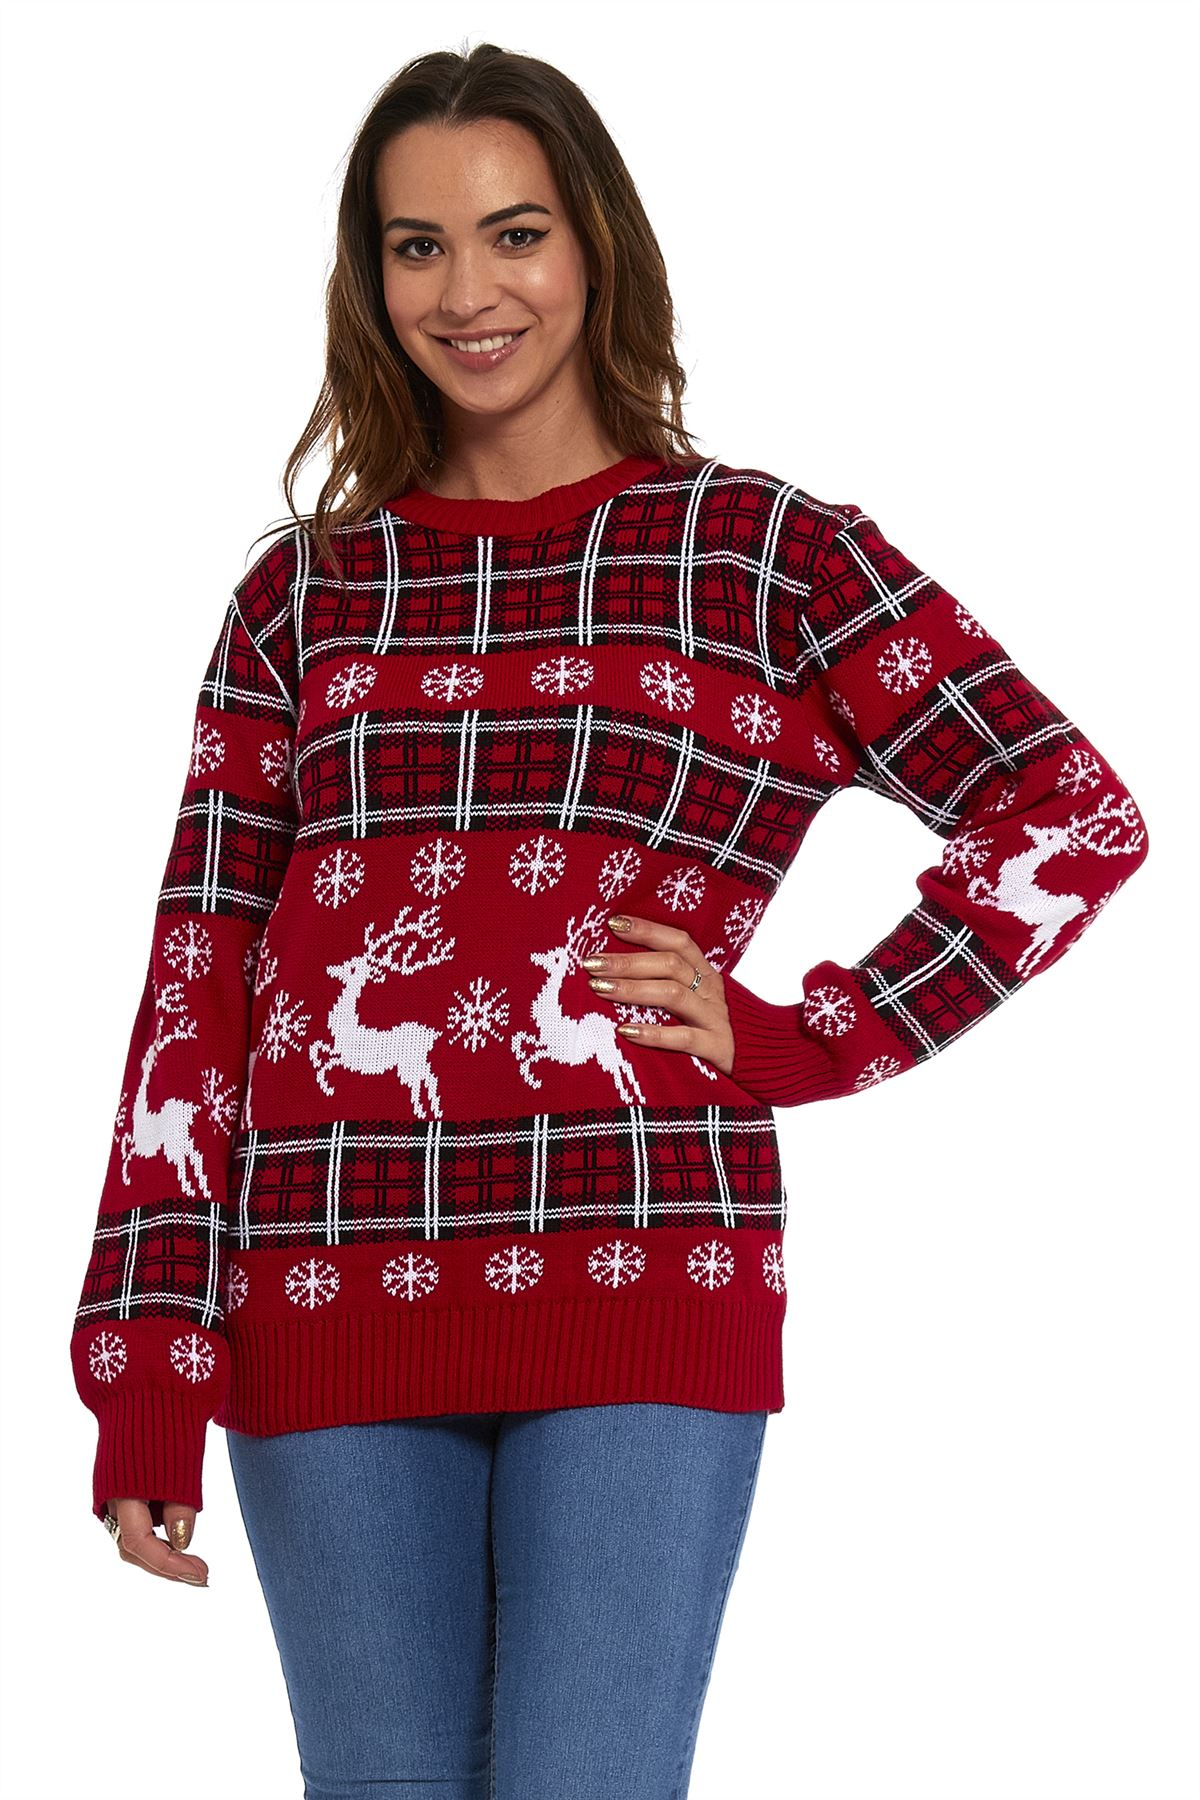 The 12 Jumpers of Christmas. With Christmas fast approaching, now is the time to start thinking about your holiday knits. Whether it's for yourself or your loved ones, we've compiled 12 festive designs to help you find the perfect pattern.. loveknitting presents The 12 Jumpers of Christmas. 1.